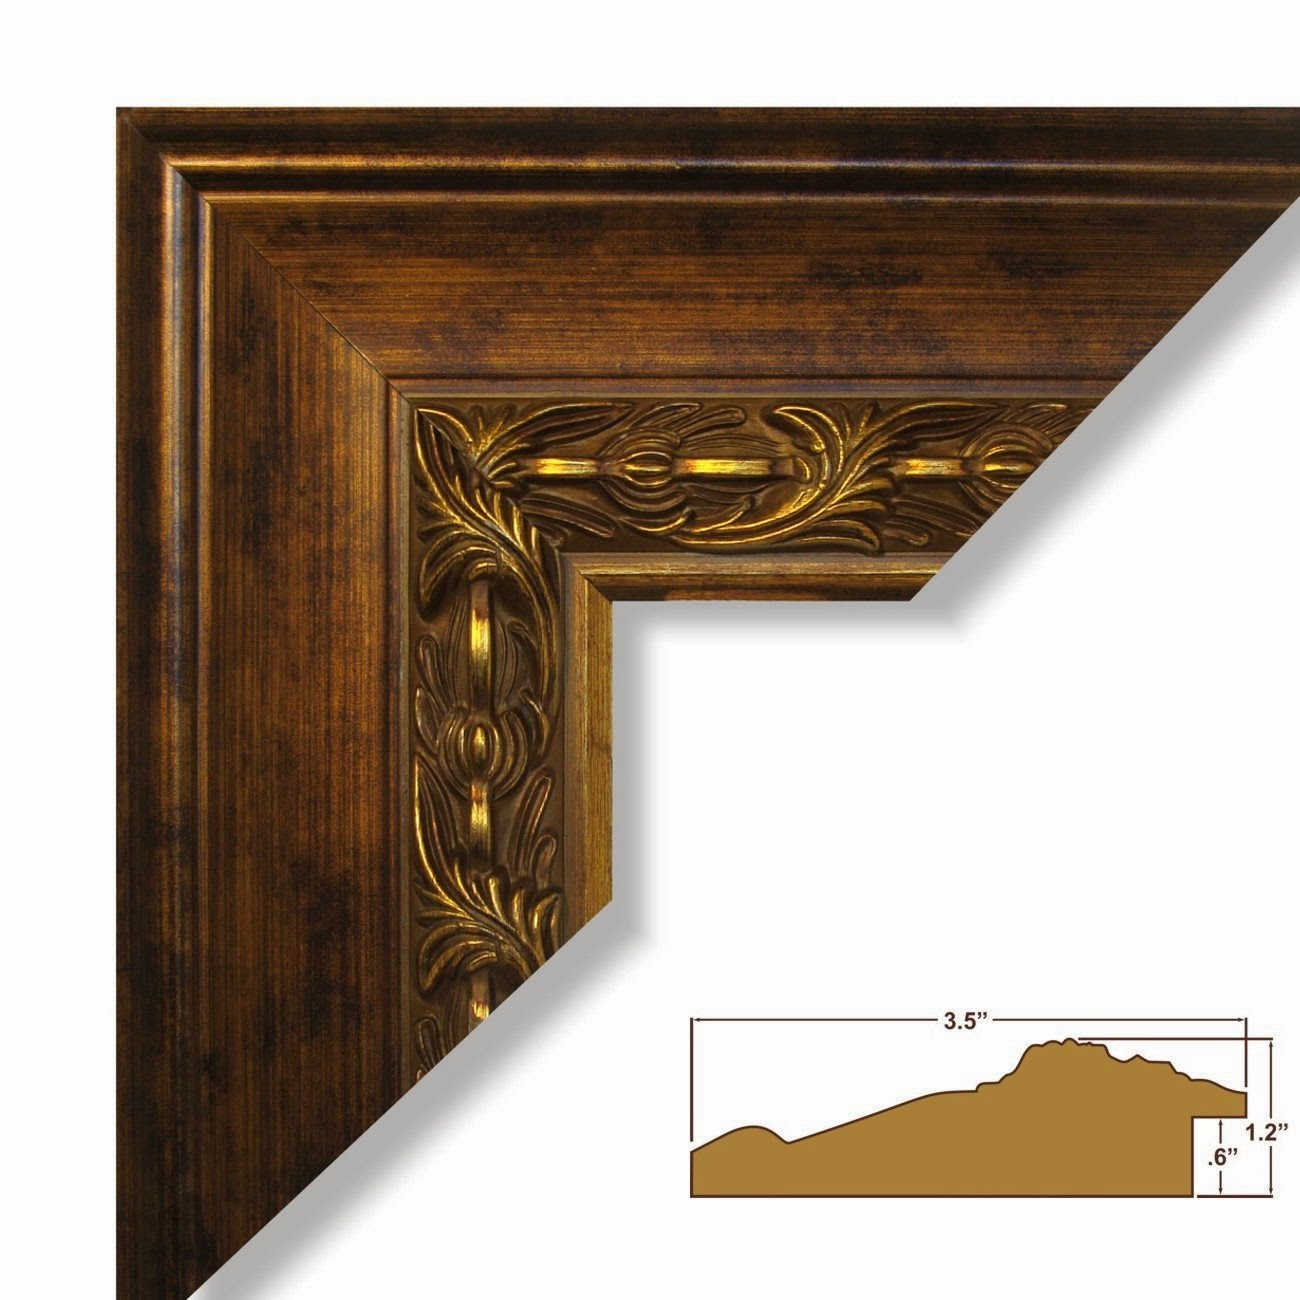 20x28 Ornate Brushed Gold 3 65 Inch Wide Complete Custom Real Wood Picture Frame